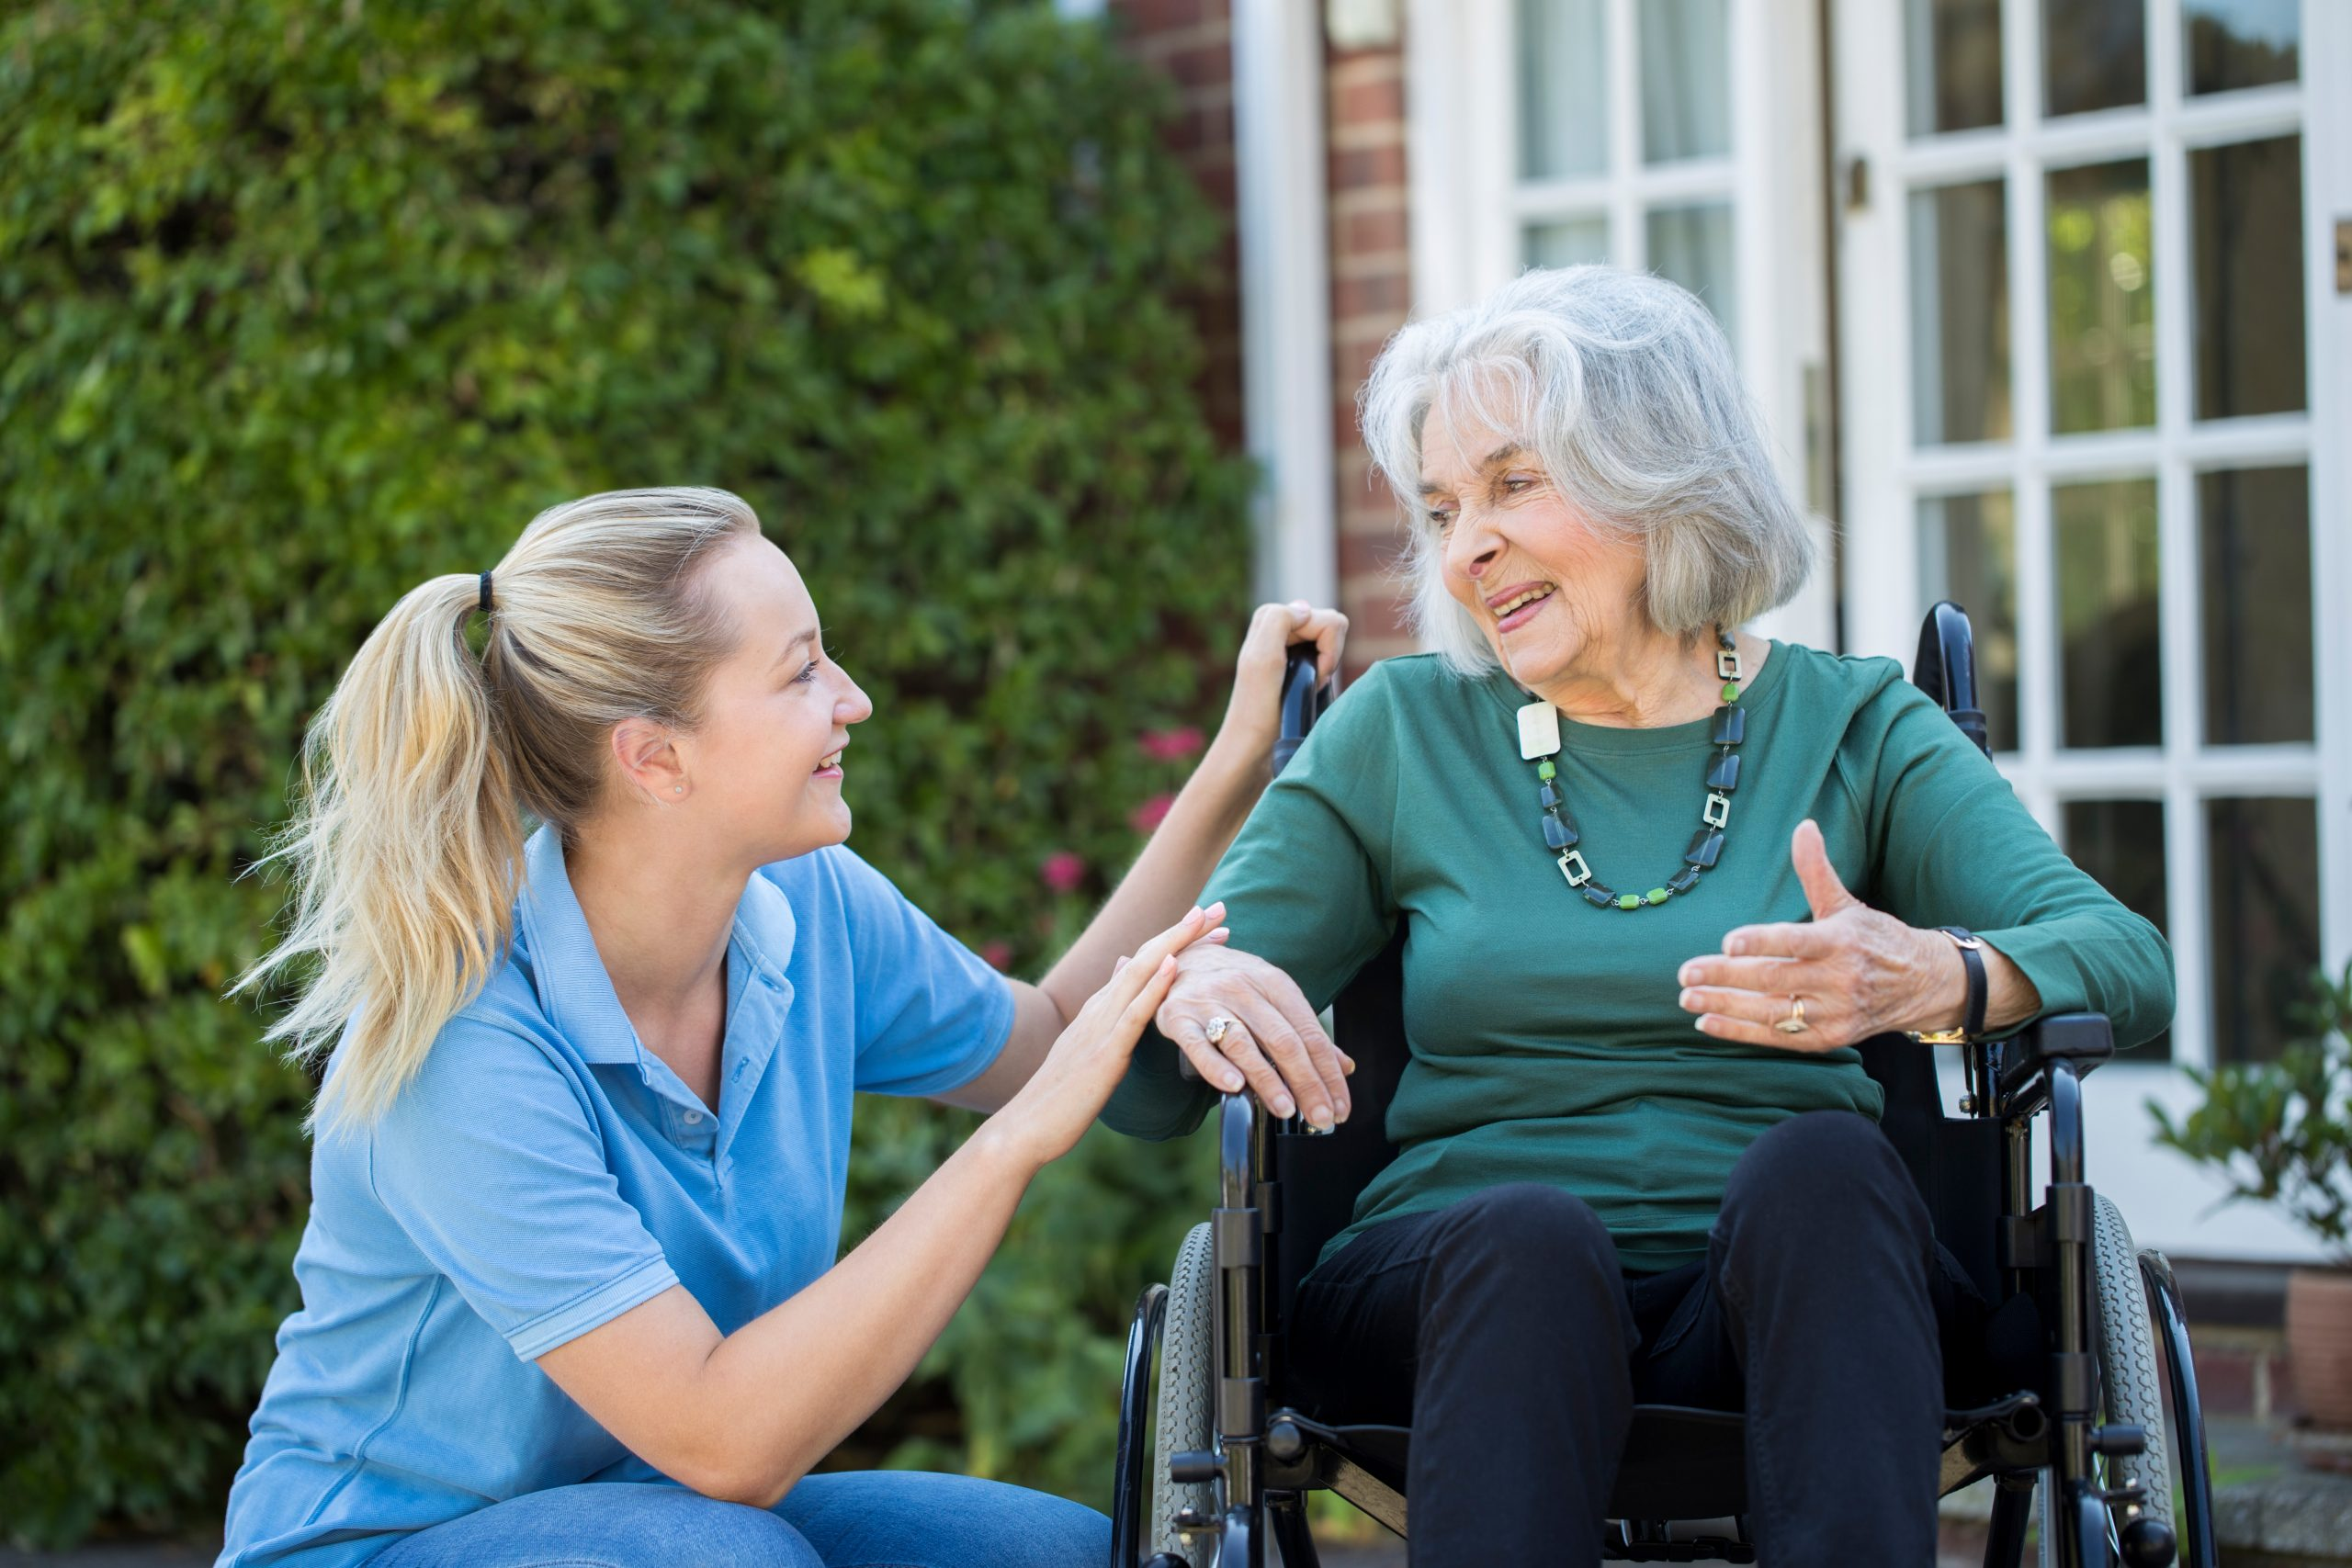 A new career in live-in care